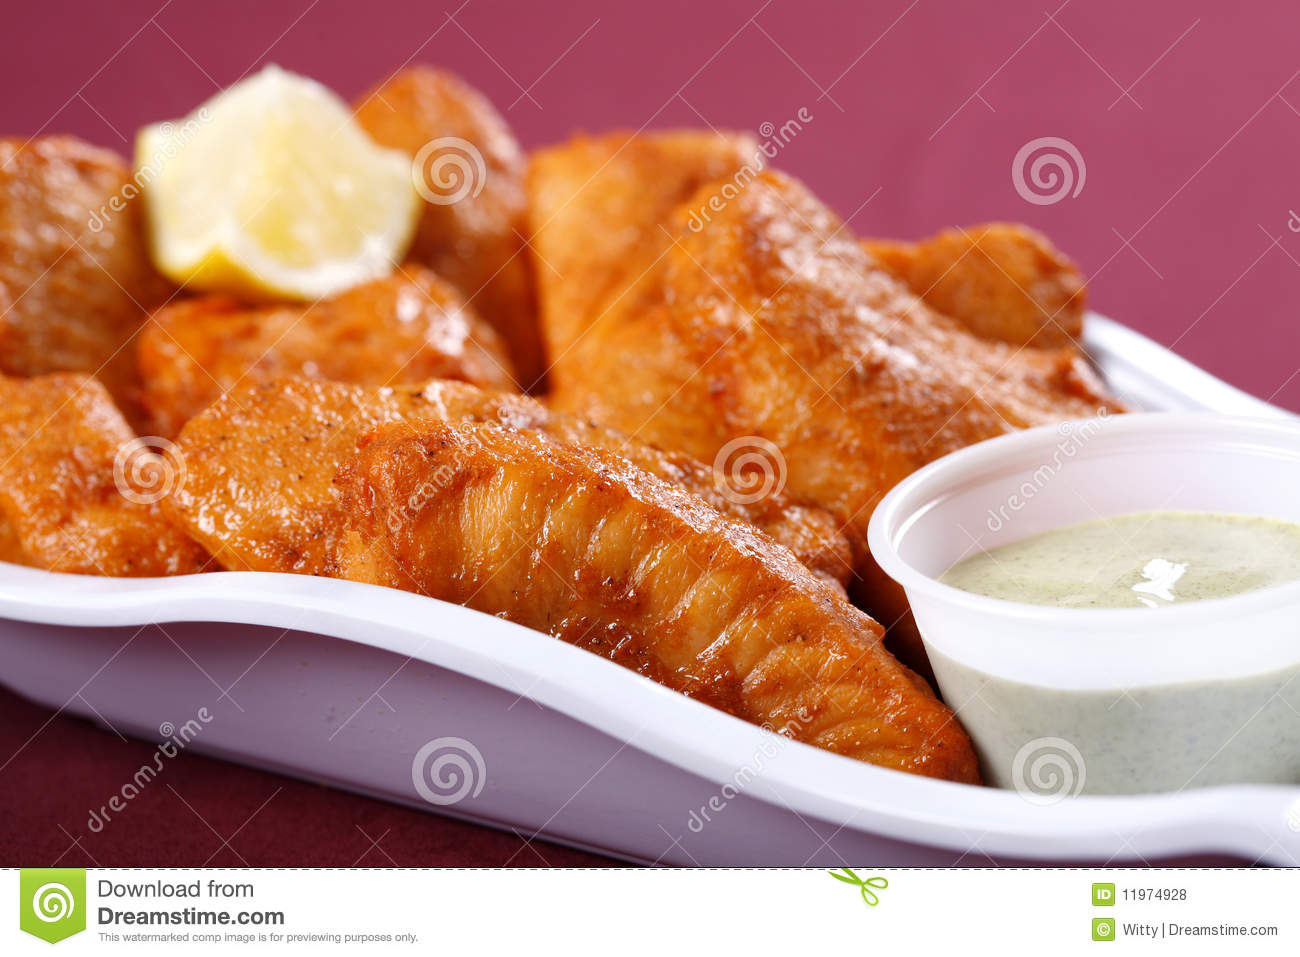 Oven baked fish royalty free stock photos image 11974928 for Oven baked fish